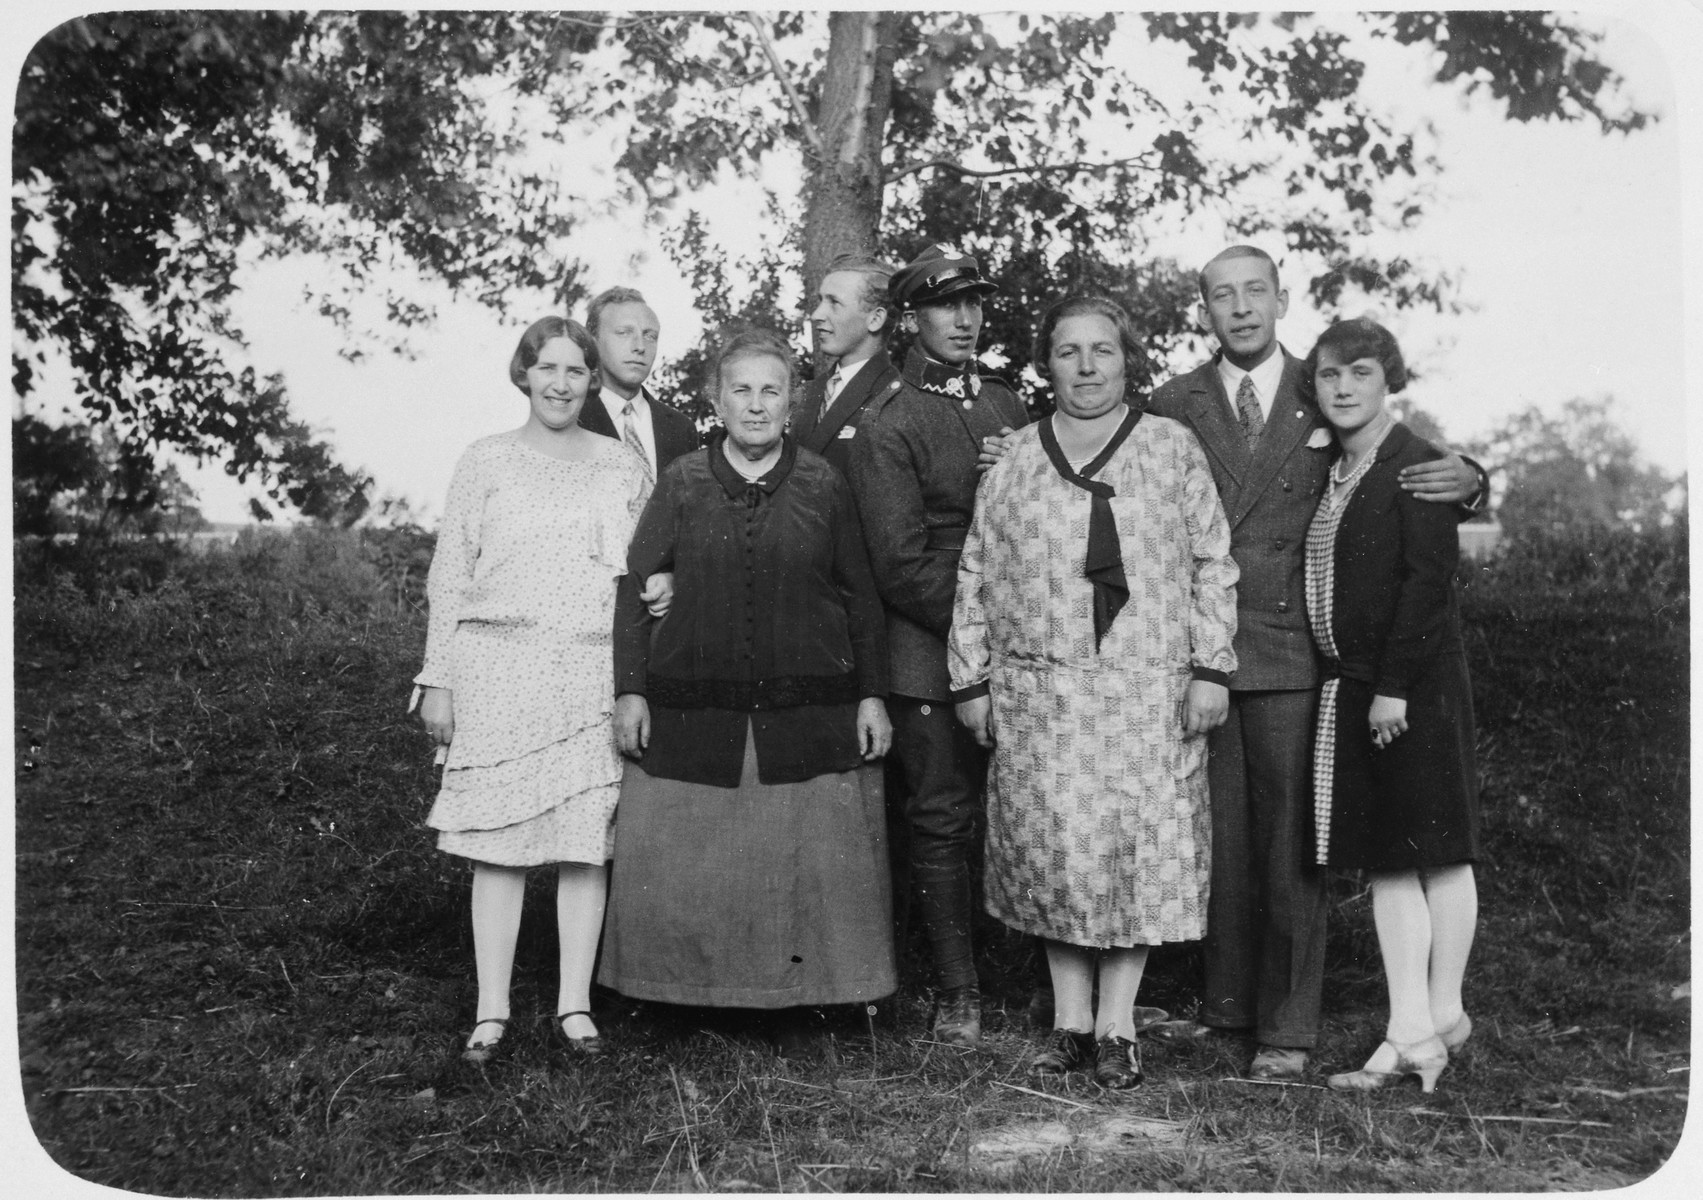 Portrait of an extended Jewish family and friends in prewar Krakow.  Fela Hoffman is pictured third from the left.  Also pictured are Wiktor Hoffman (probably fourth from the left) and his brother.